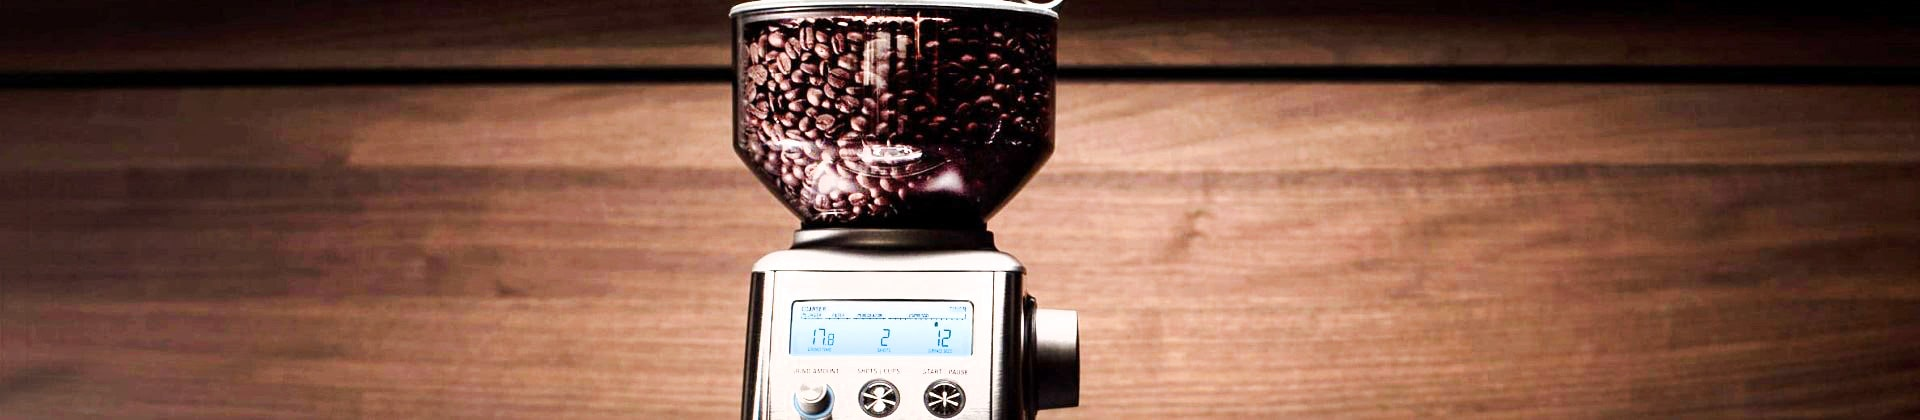 Best Coffee Grinders for French Press ⁠